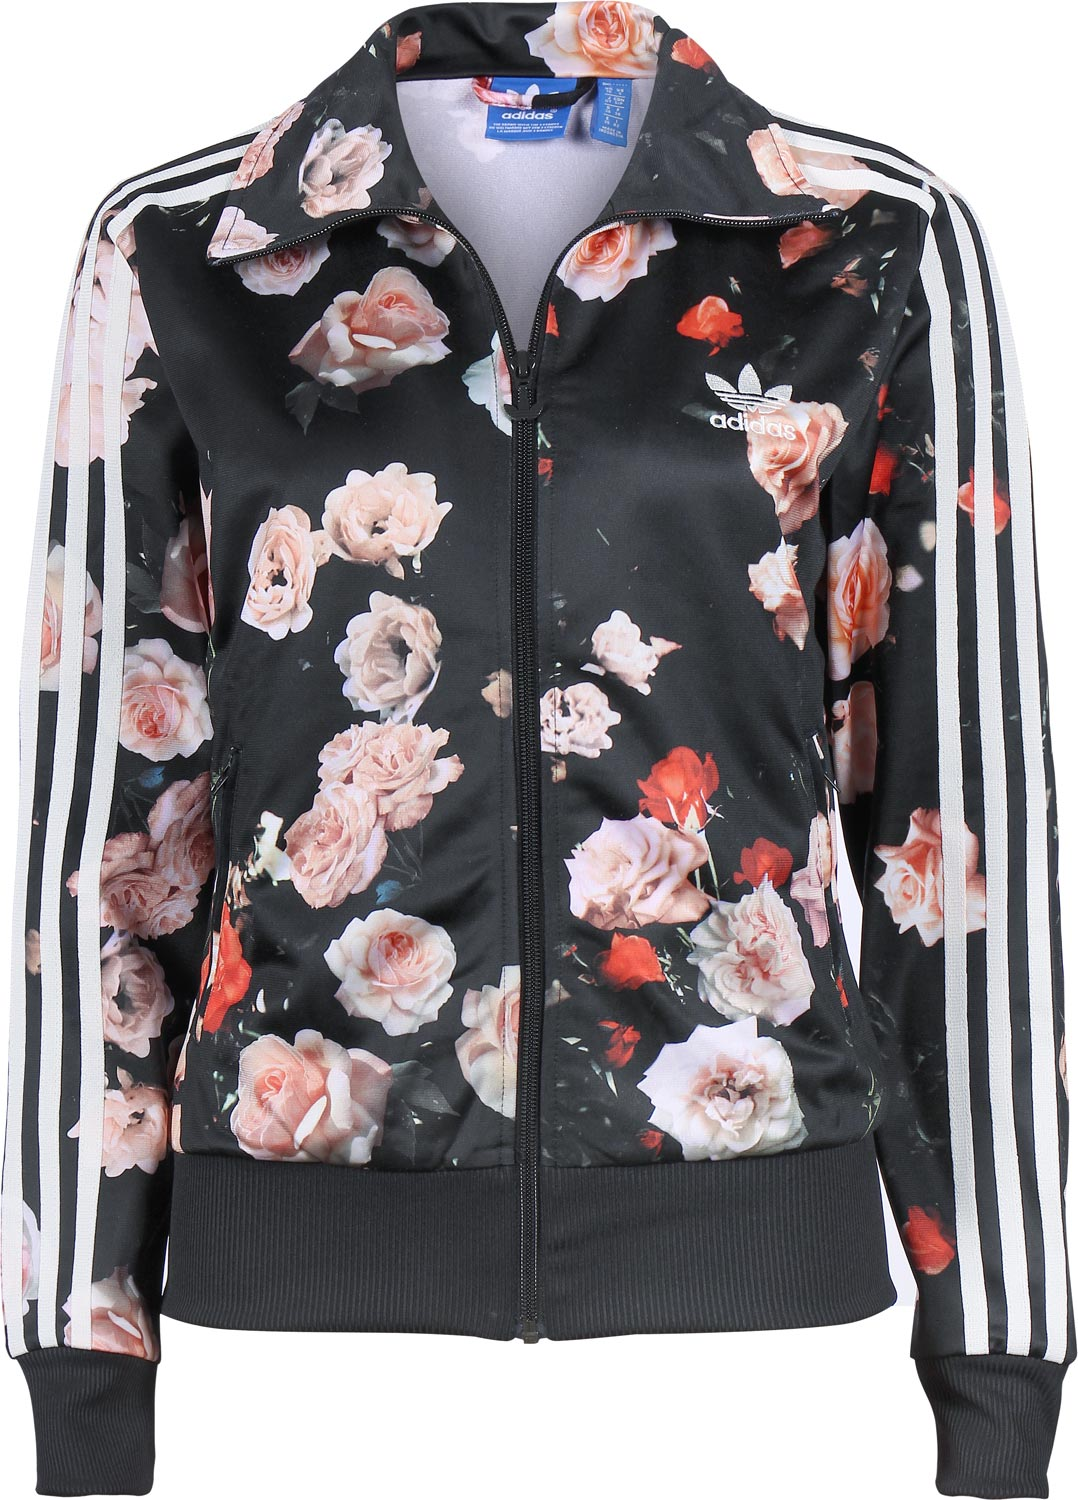 Adidas Firebird TT W jacket black/rose